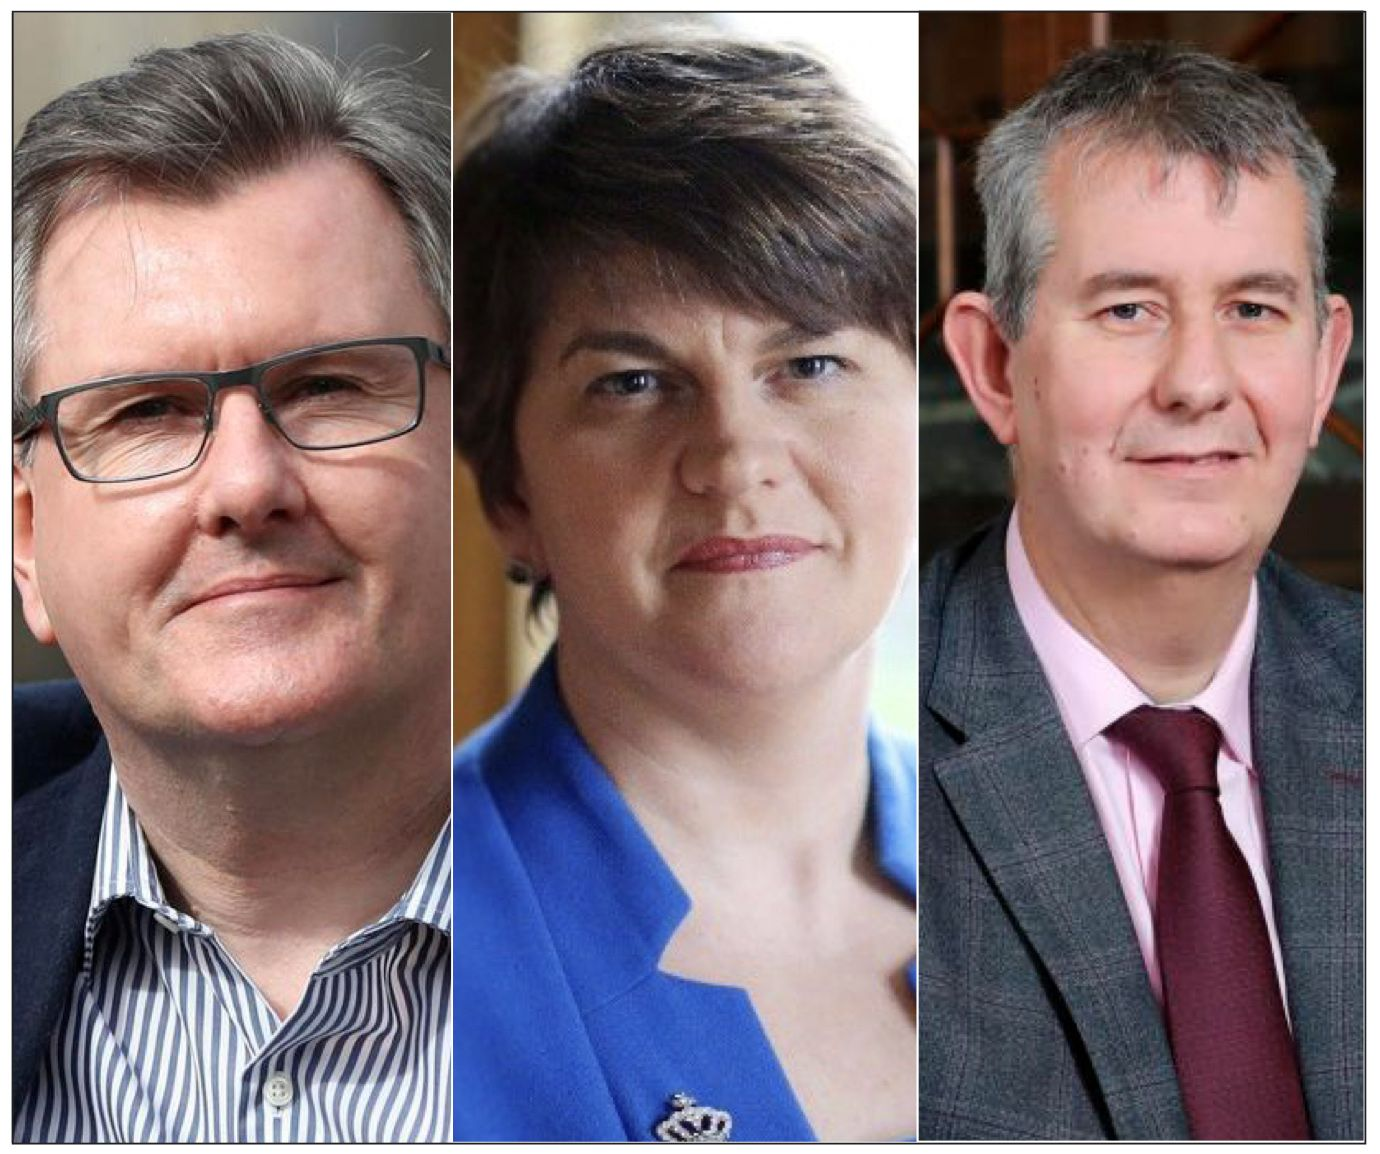 Jeffrey Donaldson and Edwin Poots are in the running for DUP leader when Arlene leaves